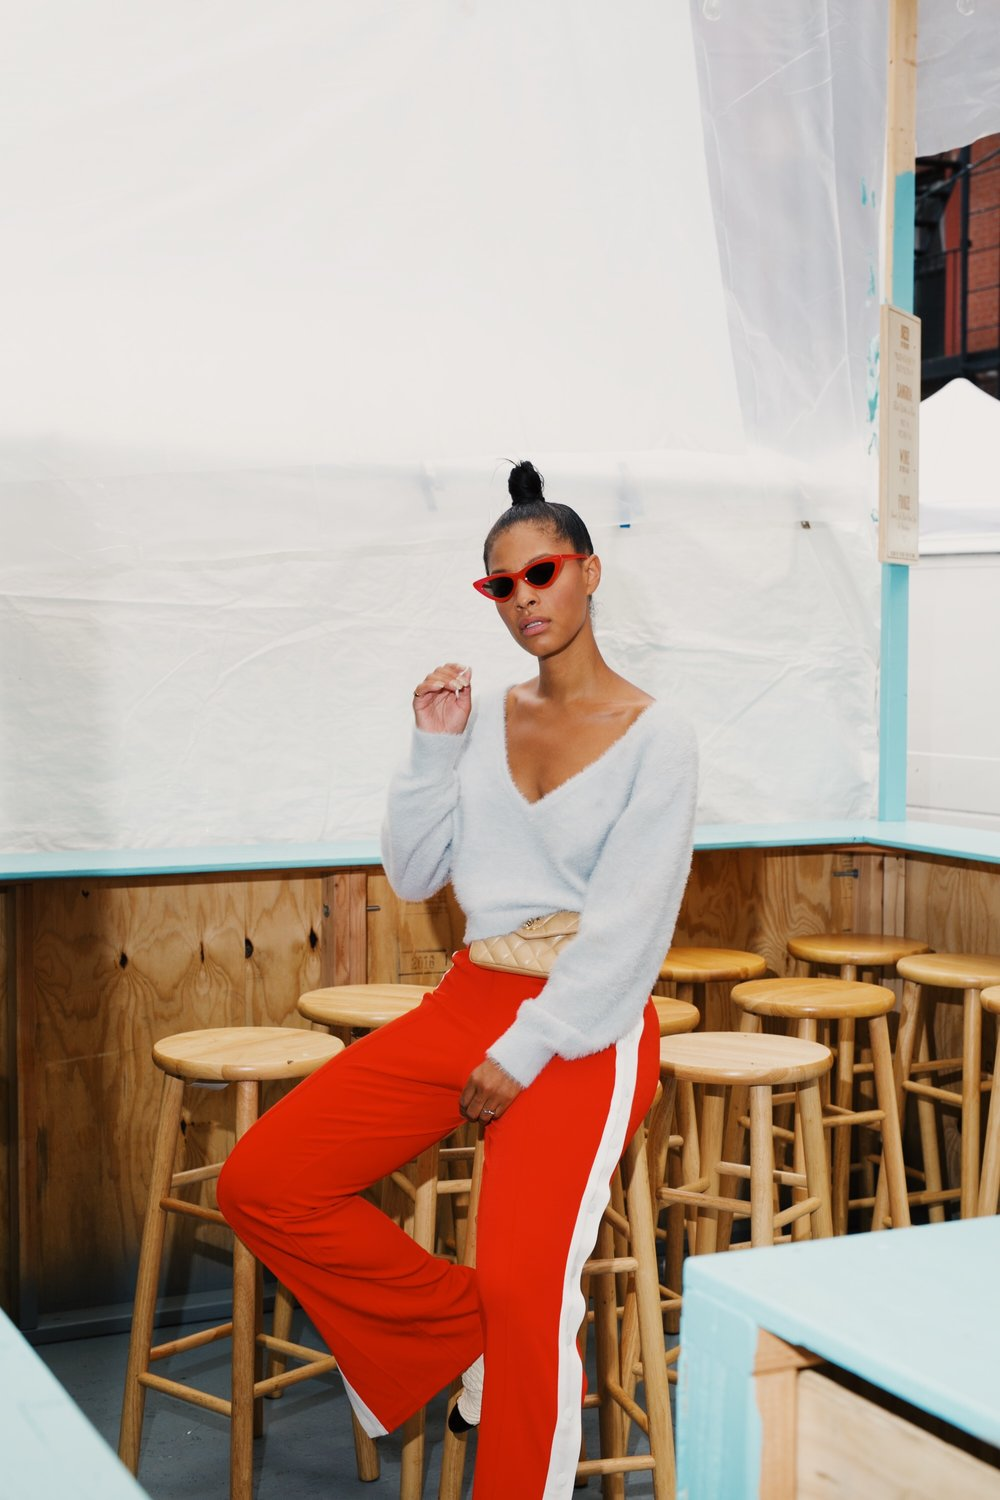 IMG_6767.JPGClaire Leana Millar in Nolita NYC wearing H&M Track pants, Chanel Slingbacks, Adam Selman The Last Lolita Sunglasses in Red, and a Vintage Cream Chanel Fanny Pack